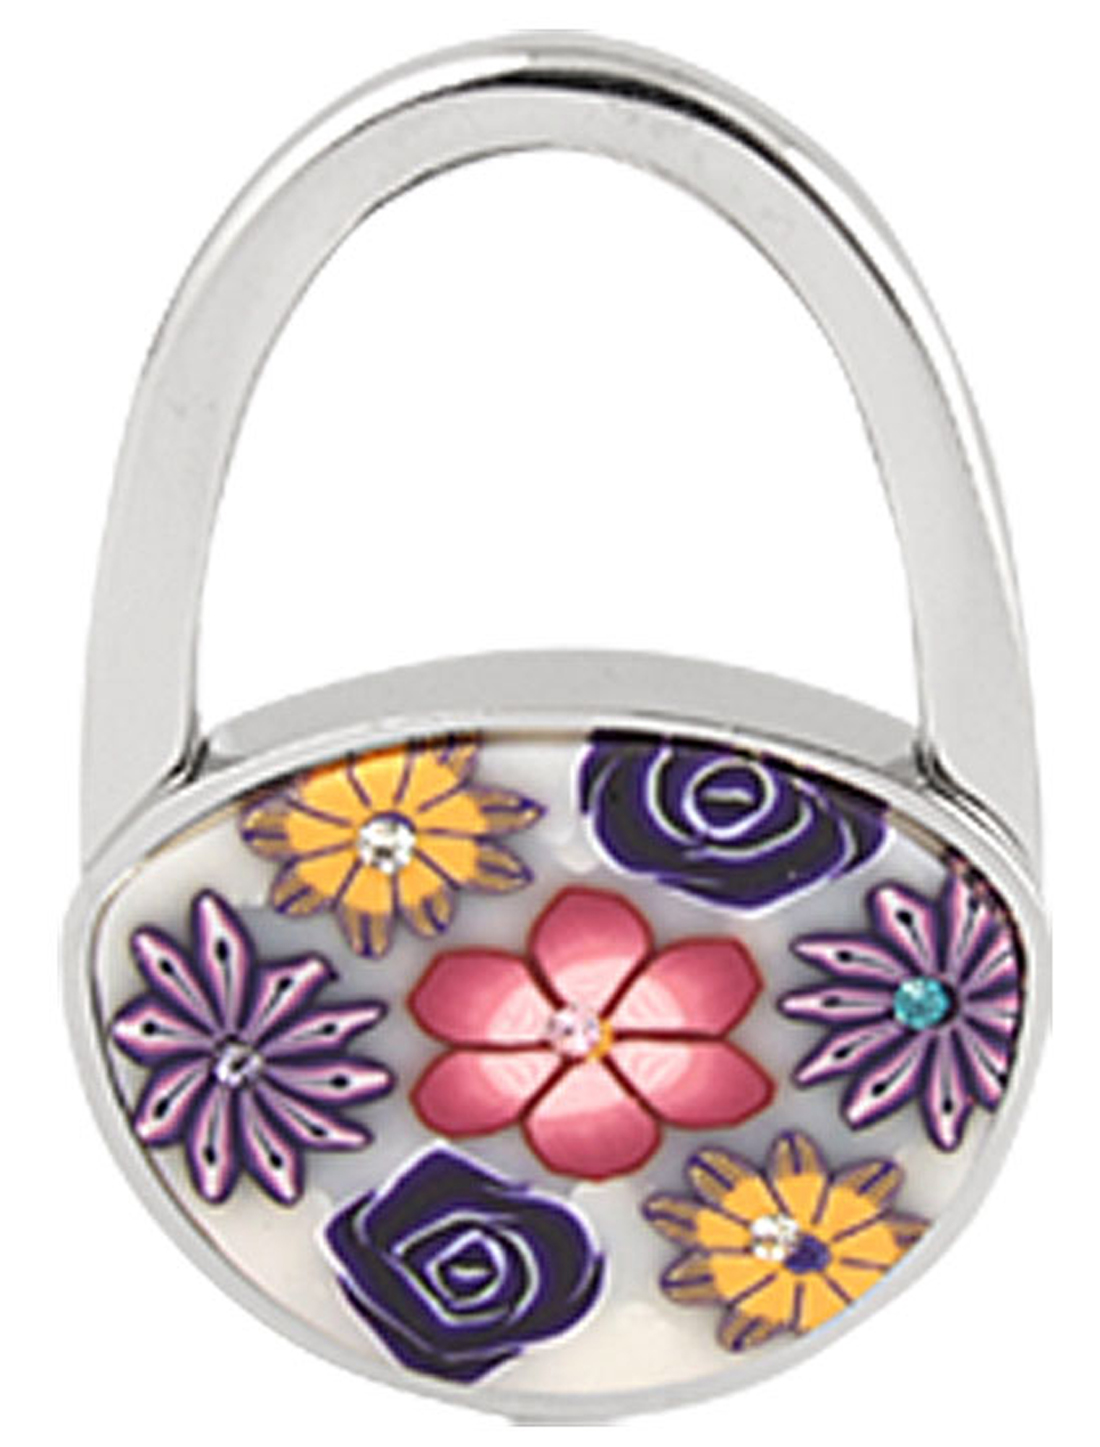 Handbag Purse Rhinestone Flower Accent Padlock Folding Table Hanger